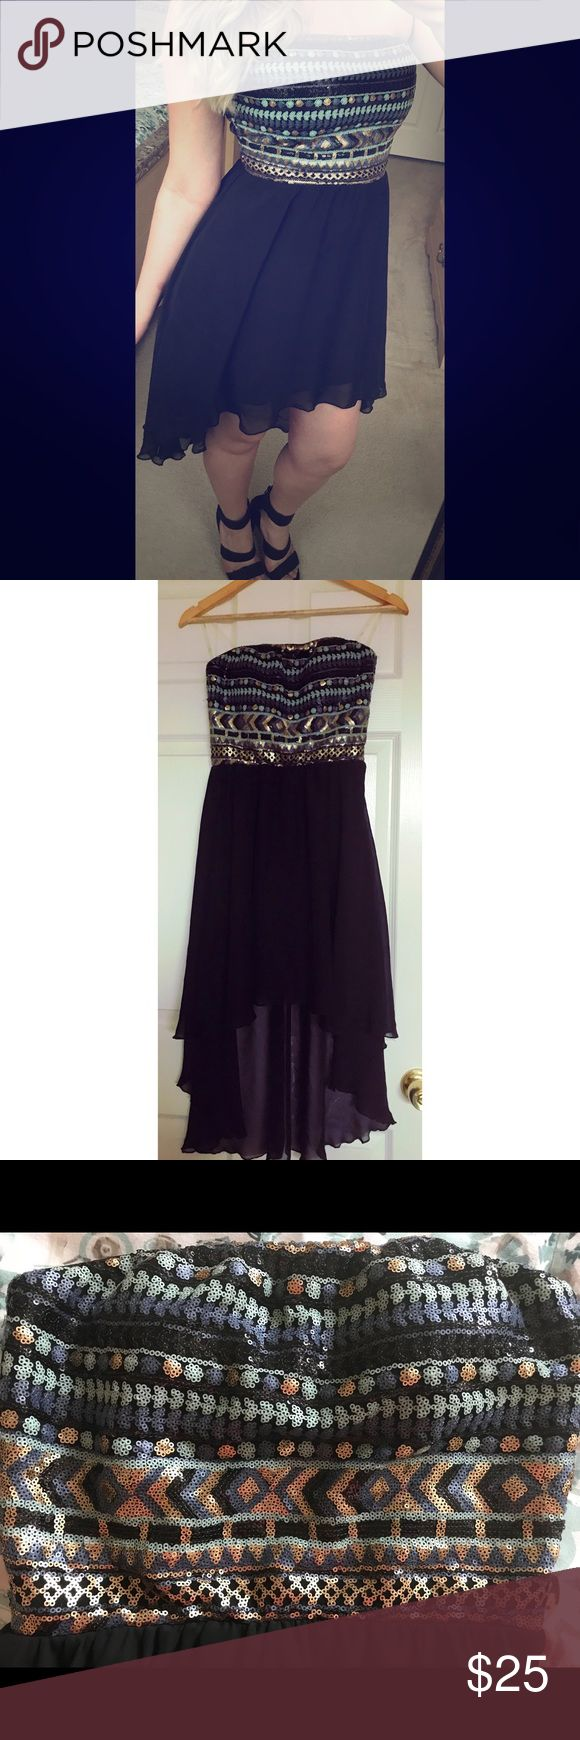 Aztec sequence dress Beautiful night out strapless dress. The bottom flows so nicely. It's a high to low dress. Worn once. Charlotte Russe Dresses High Low